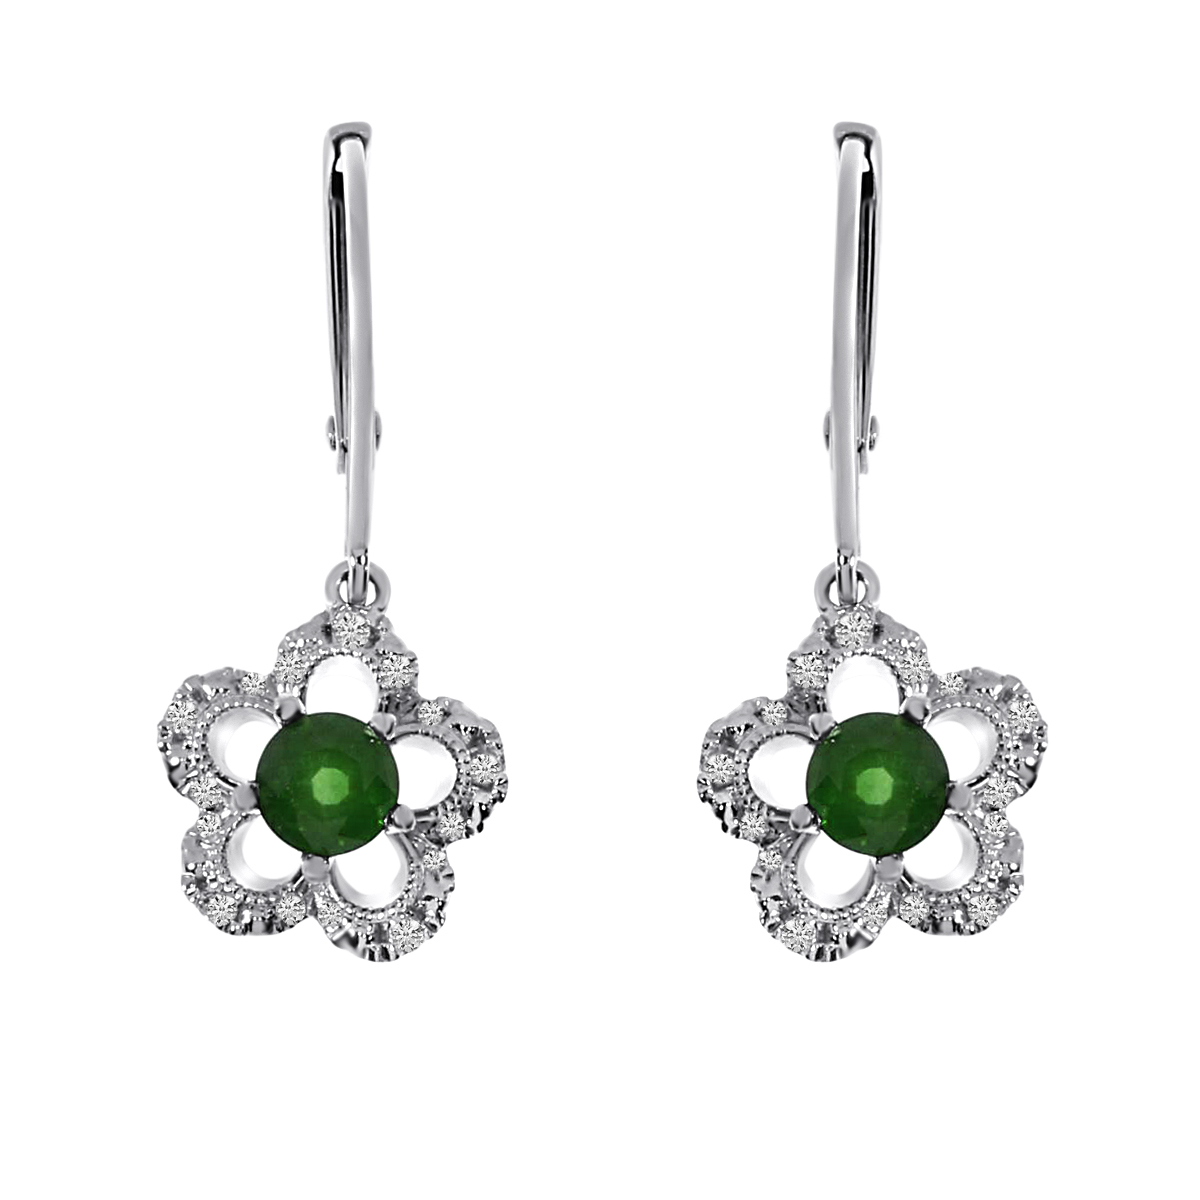 Floral shaped earrings in 14k white gold with 4 mm round emeralds and .11 ct diamonds.